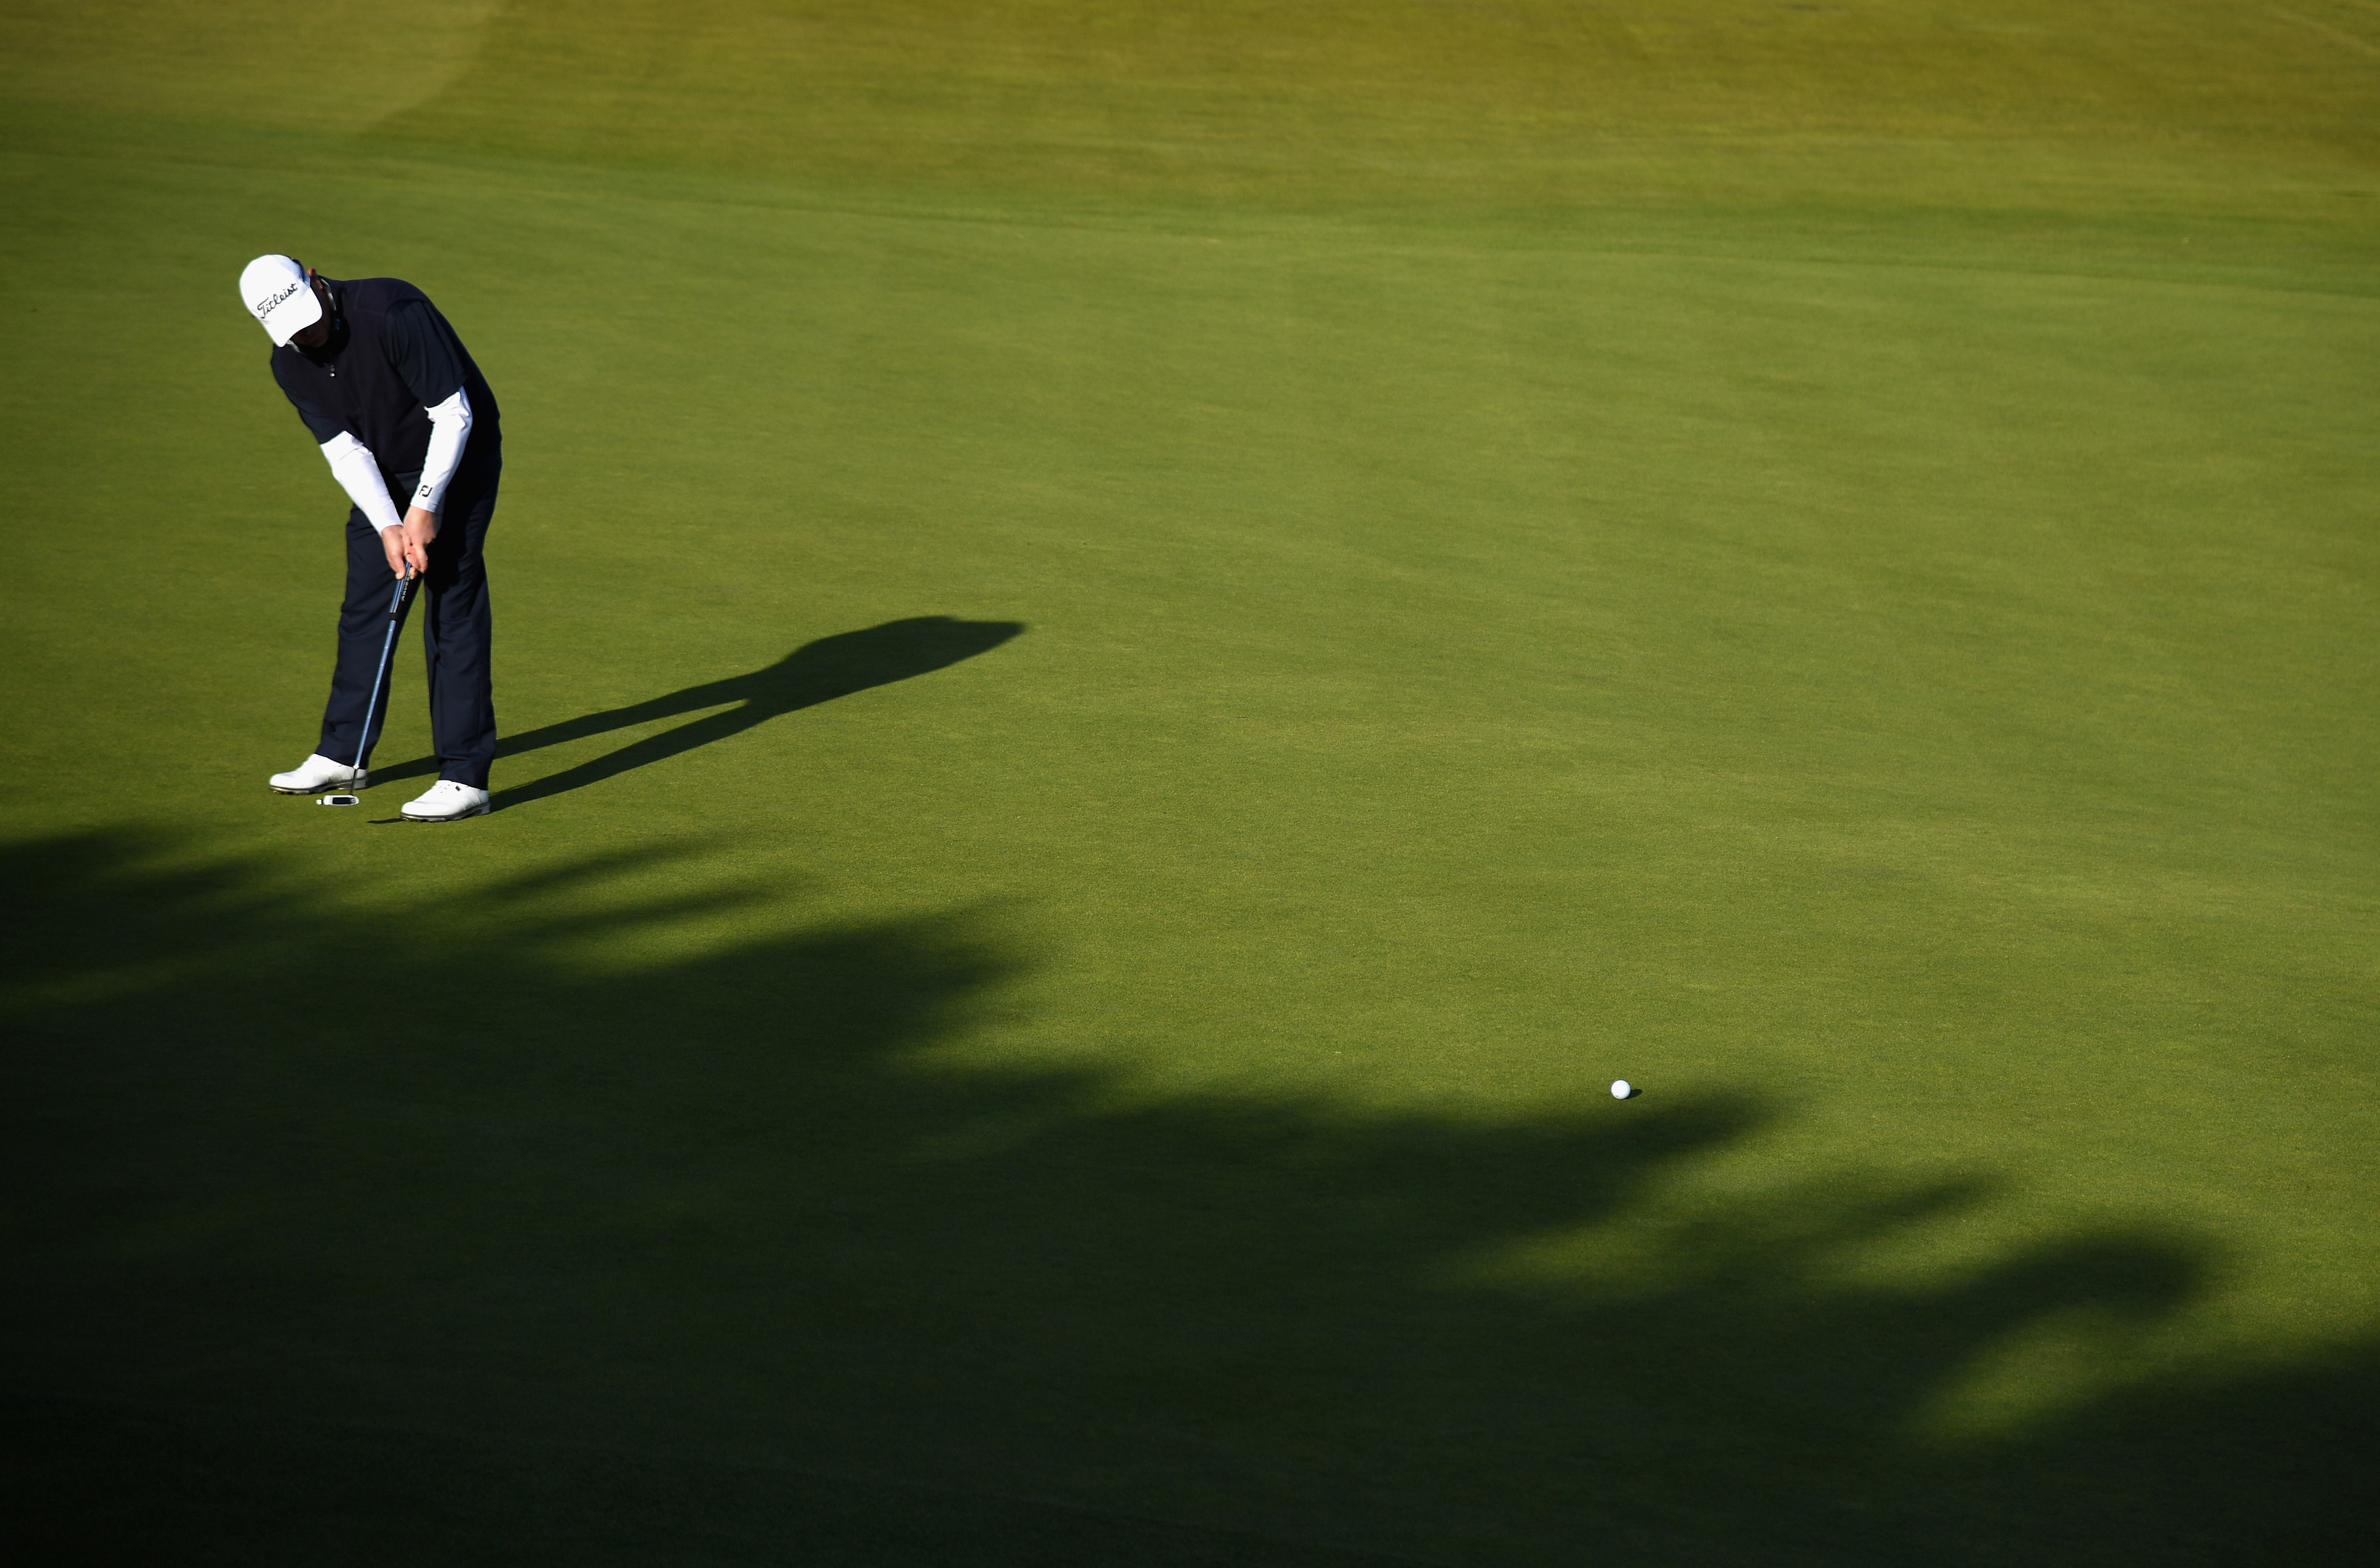 David Drysdale putts on the 12th green at Kingsbarns on his way to a 67.